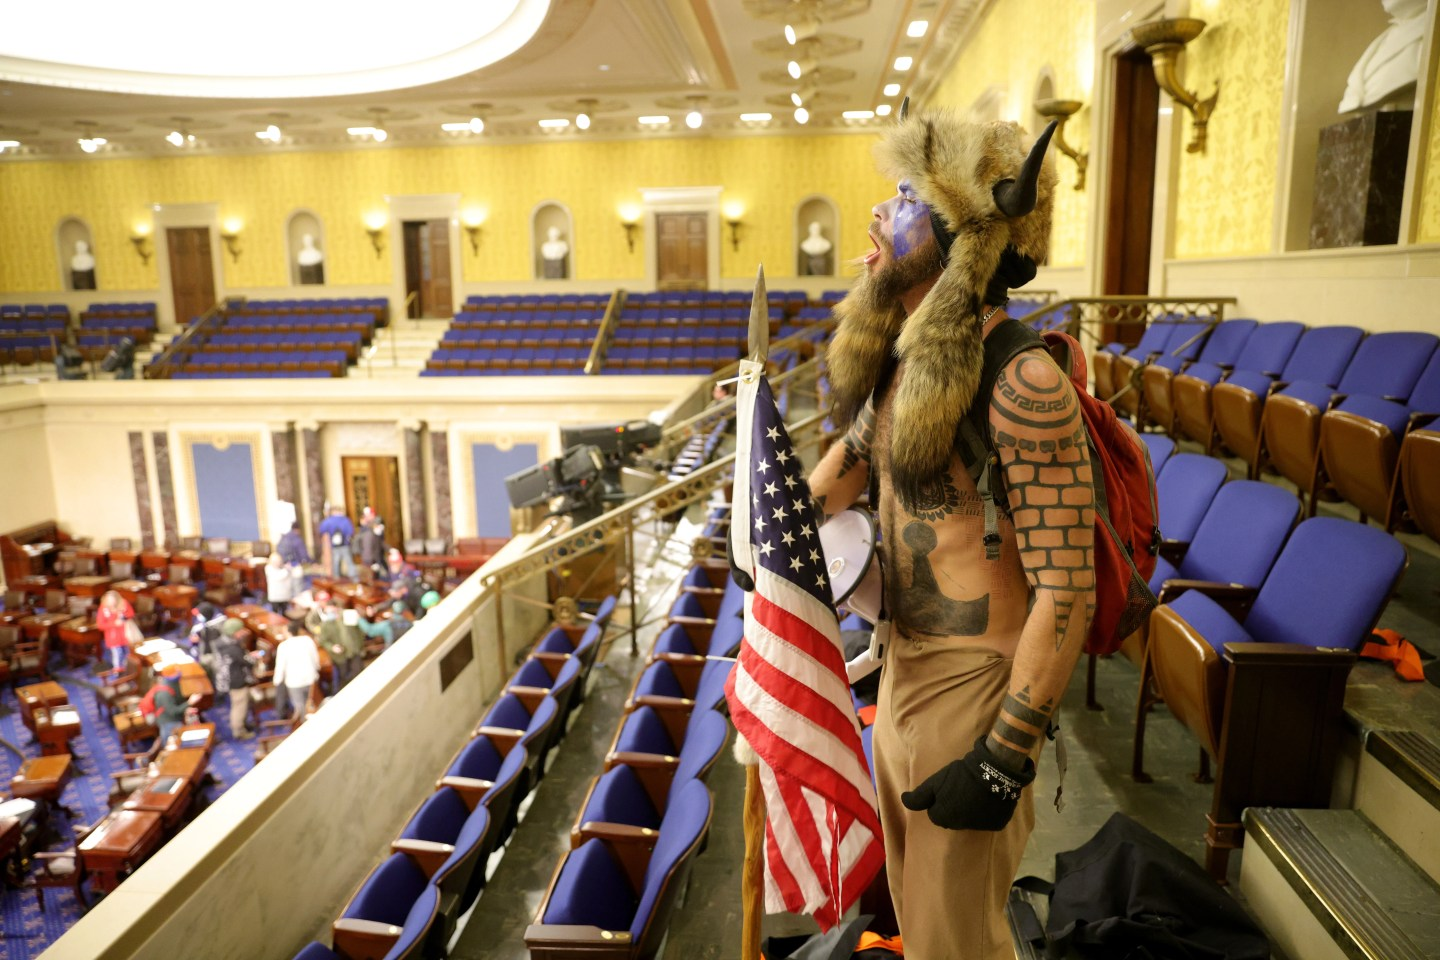 Jacob Anthony Chansley, aka Jake Angeli of Phoenix, yells inside the Senate chamber on Jan. 6, 2021, in Washington, D.C. Congress held a joint session to ratify President-elect Joe Biden's 306-232 Electoral College win over President Donald Trump. Pro-Trump protesters entered the U.S. Capitol during mass demonstrations in the nation's capital.